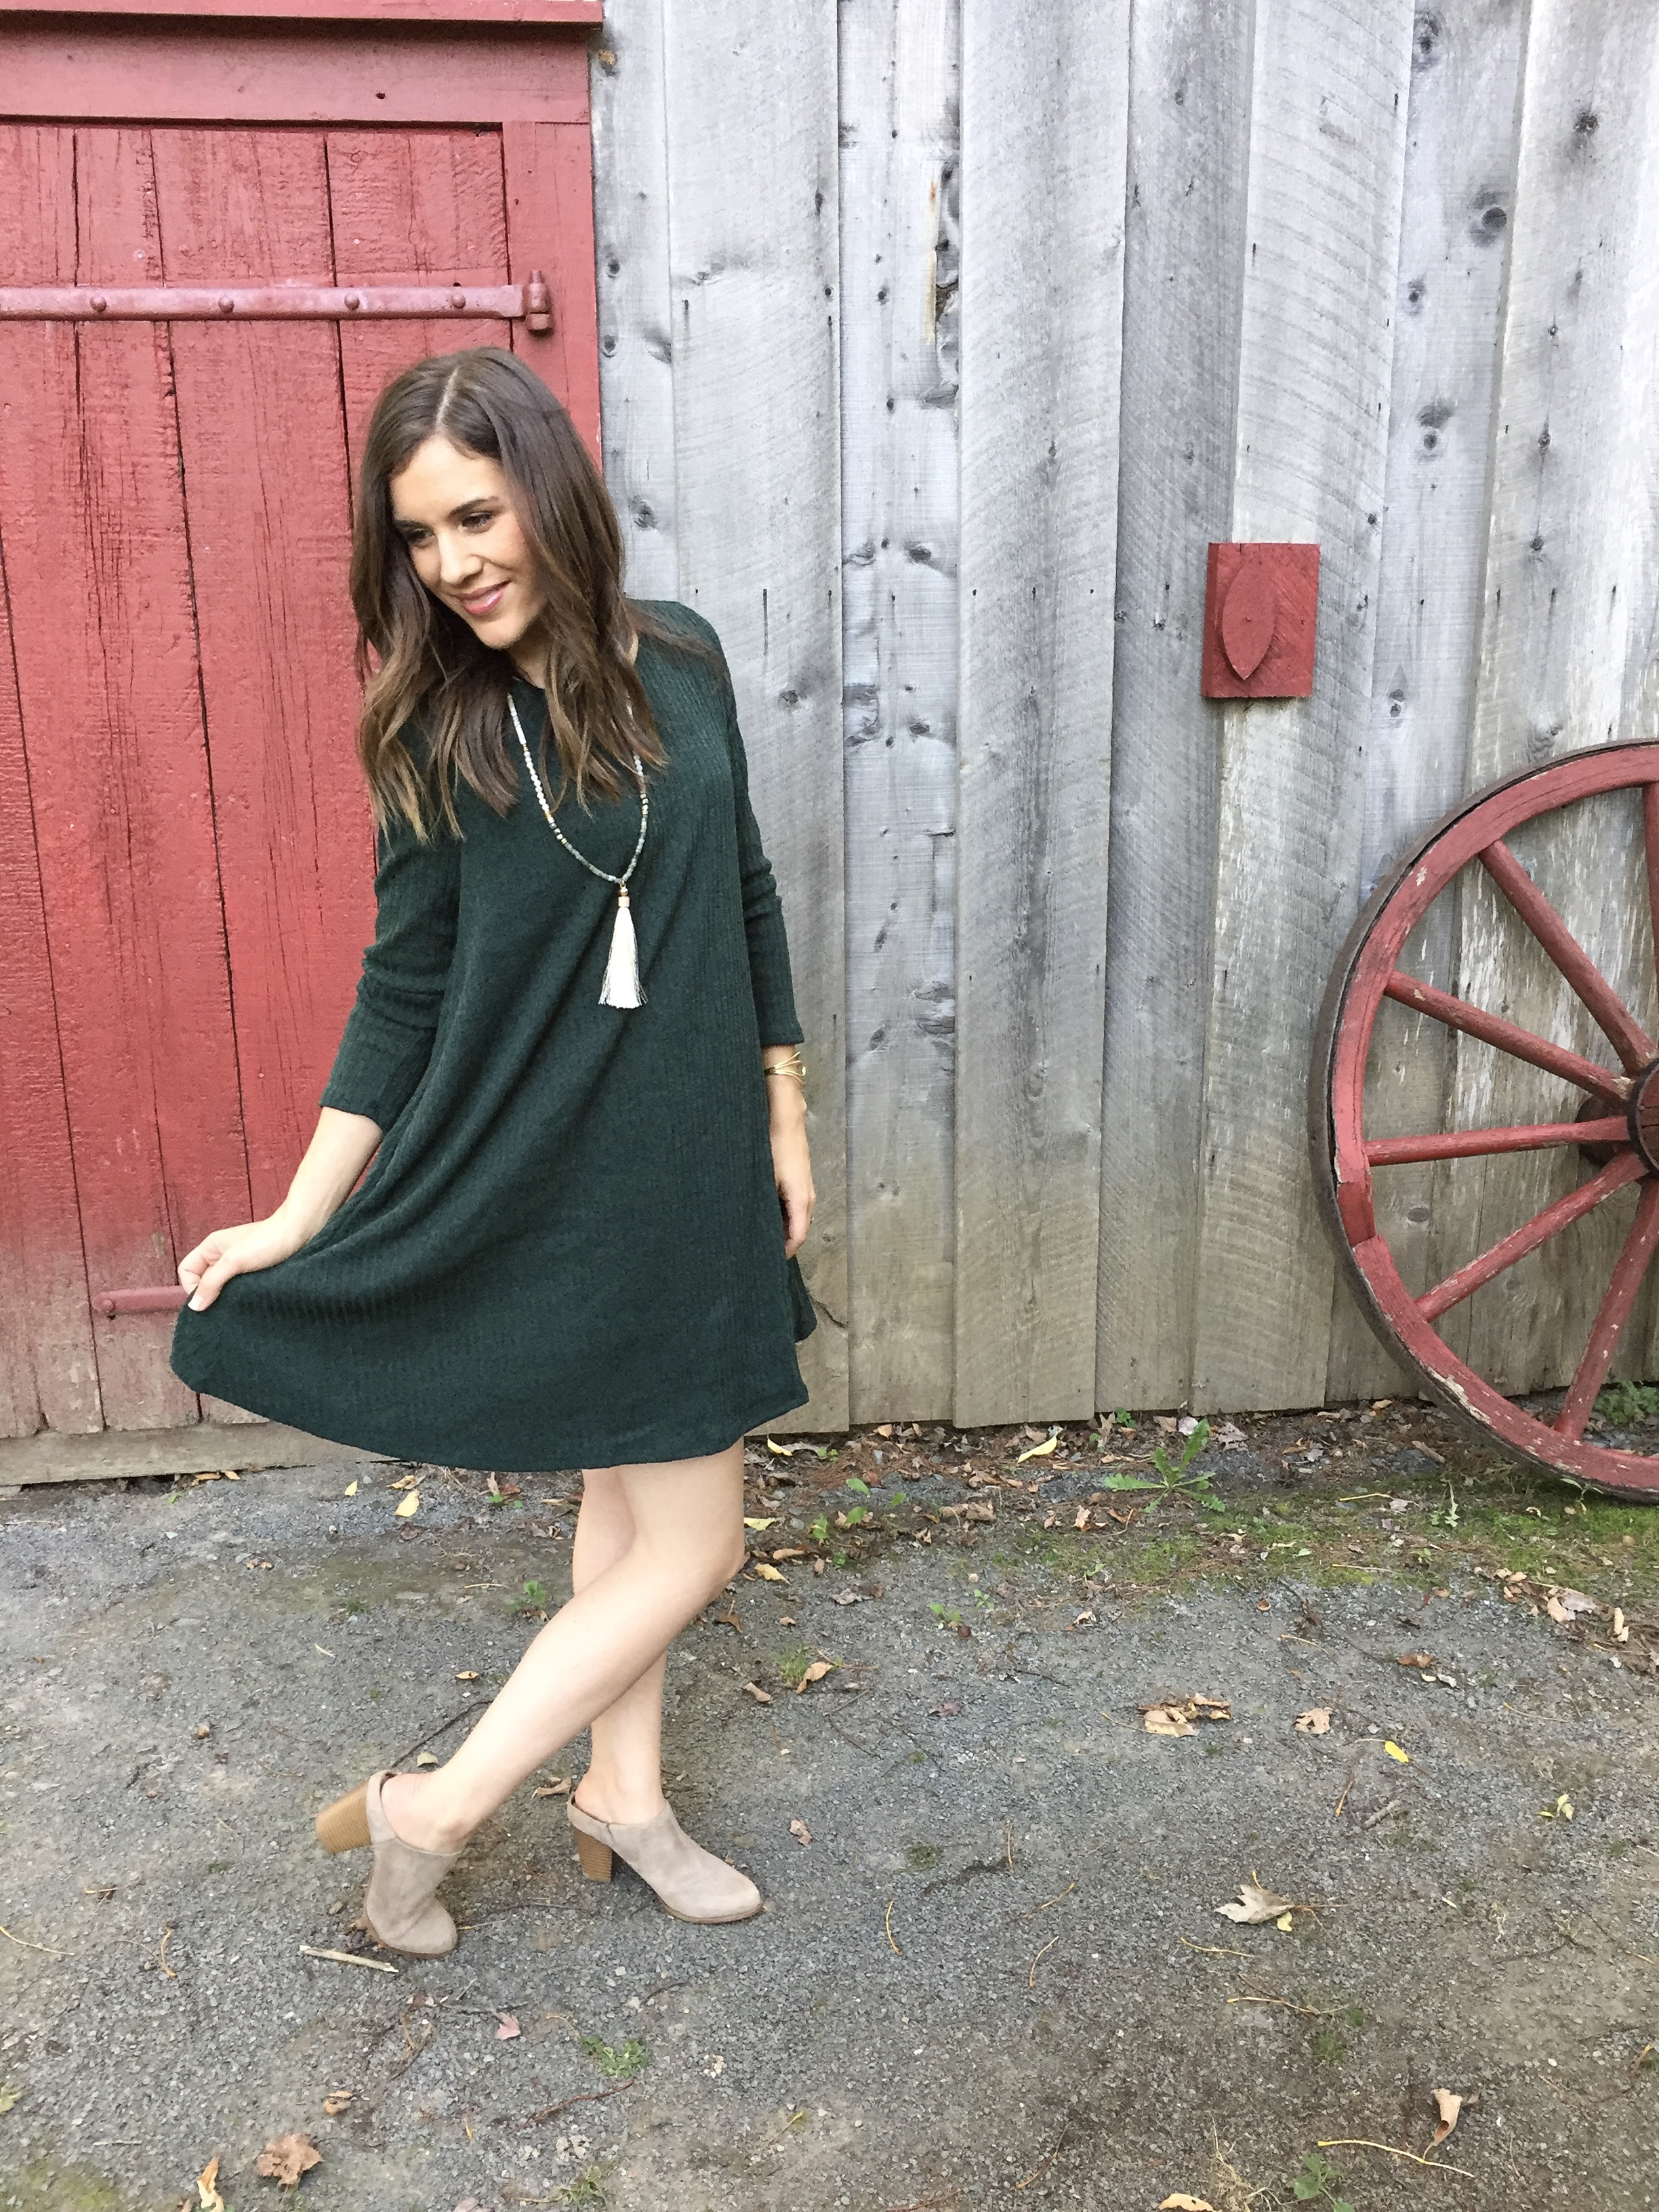 Shop Pink Blush sweater dress 5x5 style challenge